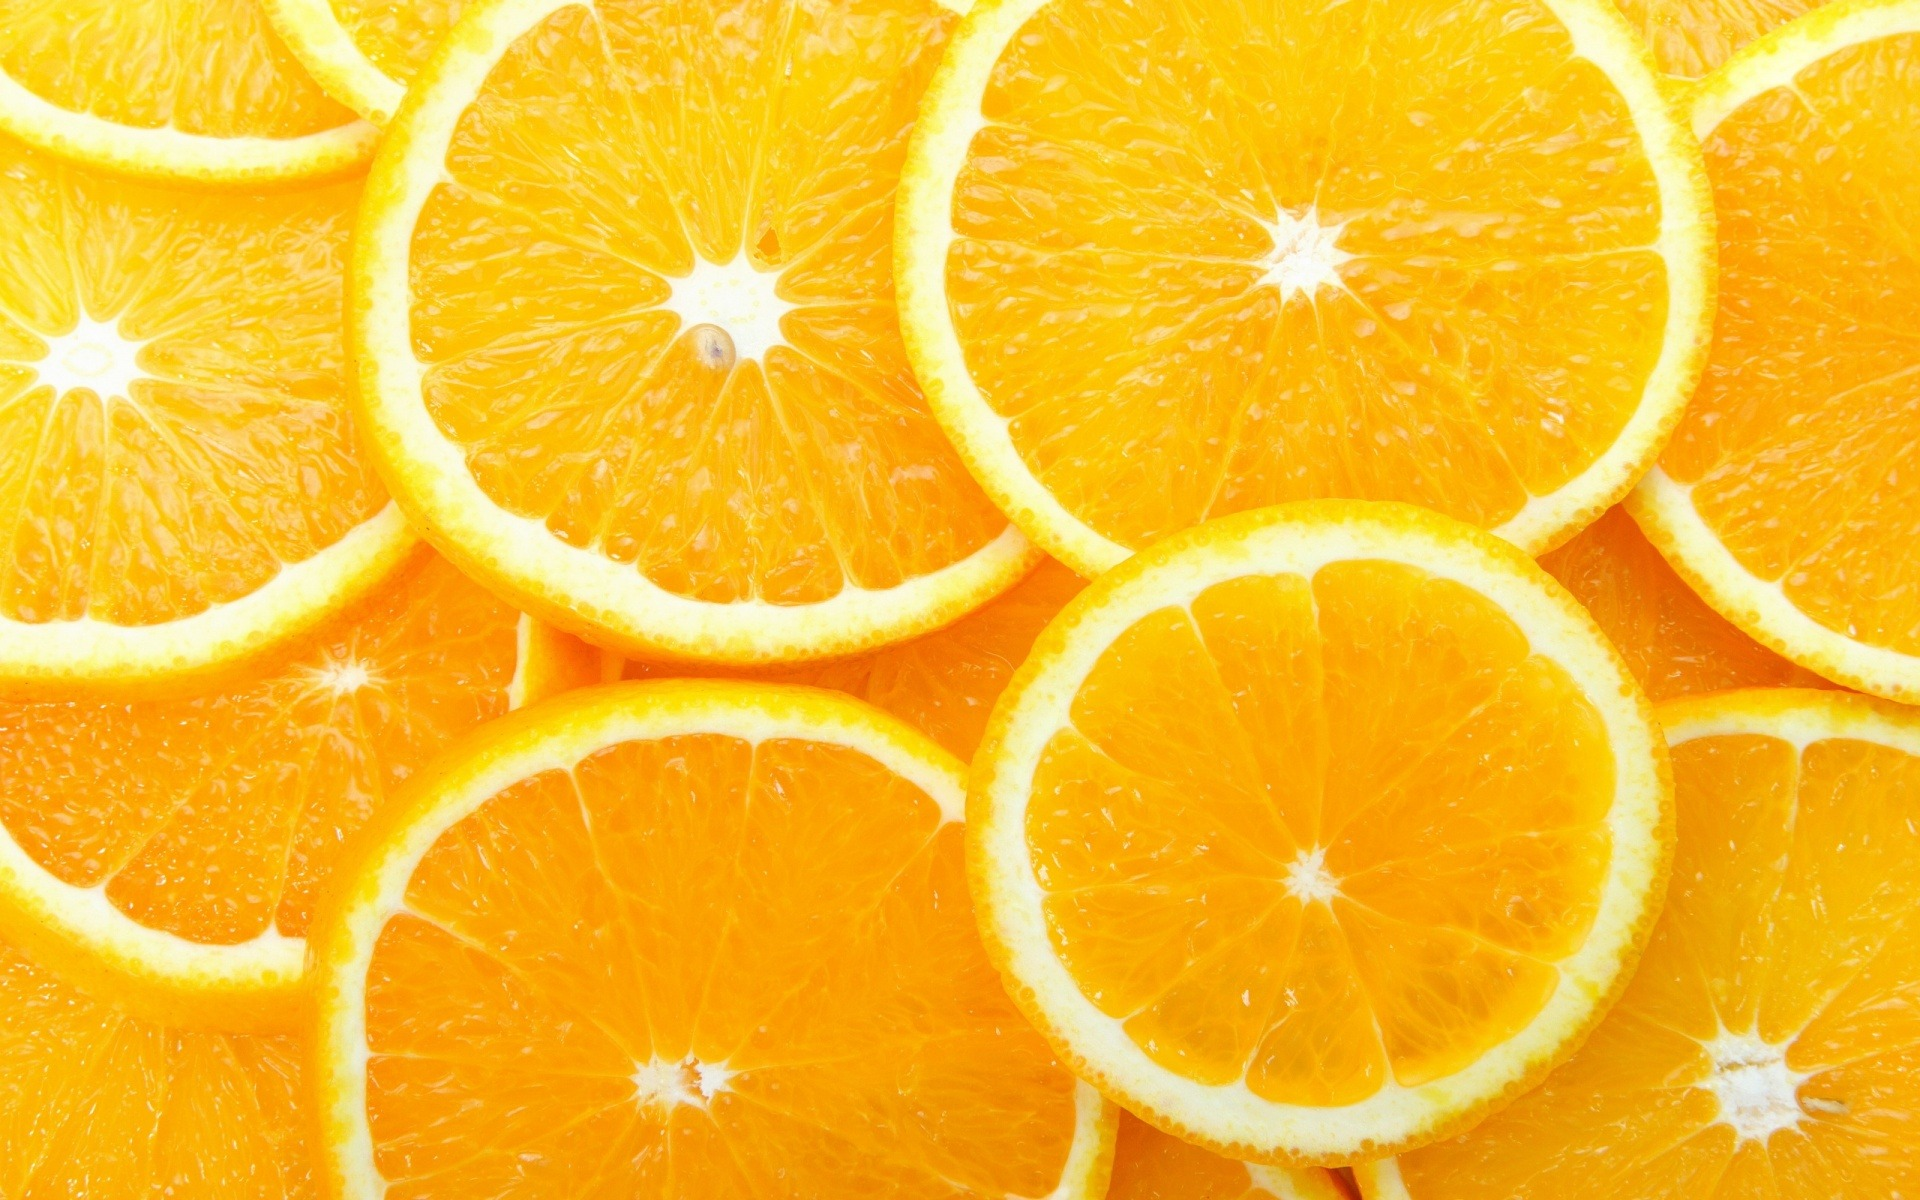 Orange Slices Wallpaper 5361.53 Kb